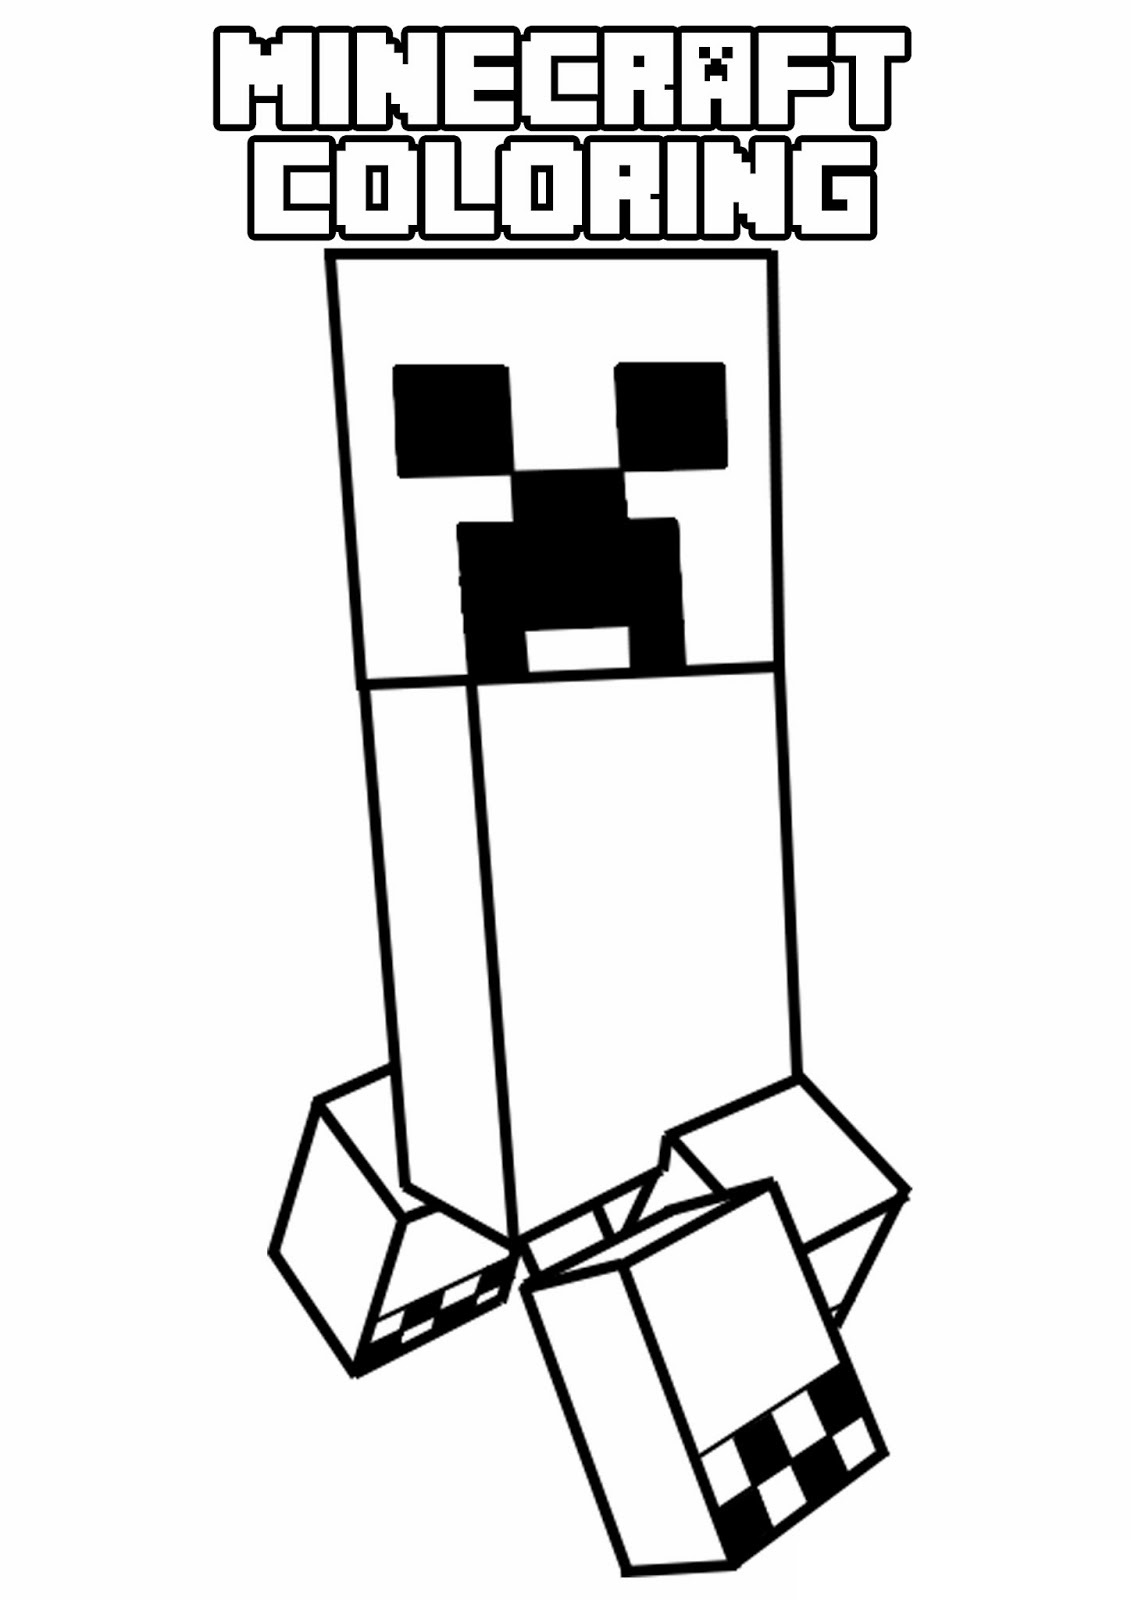 minecraft creeper coloring page 1minecraft creeper coloring page 1